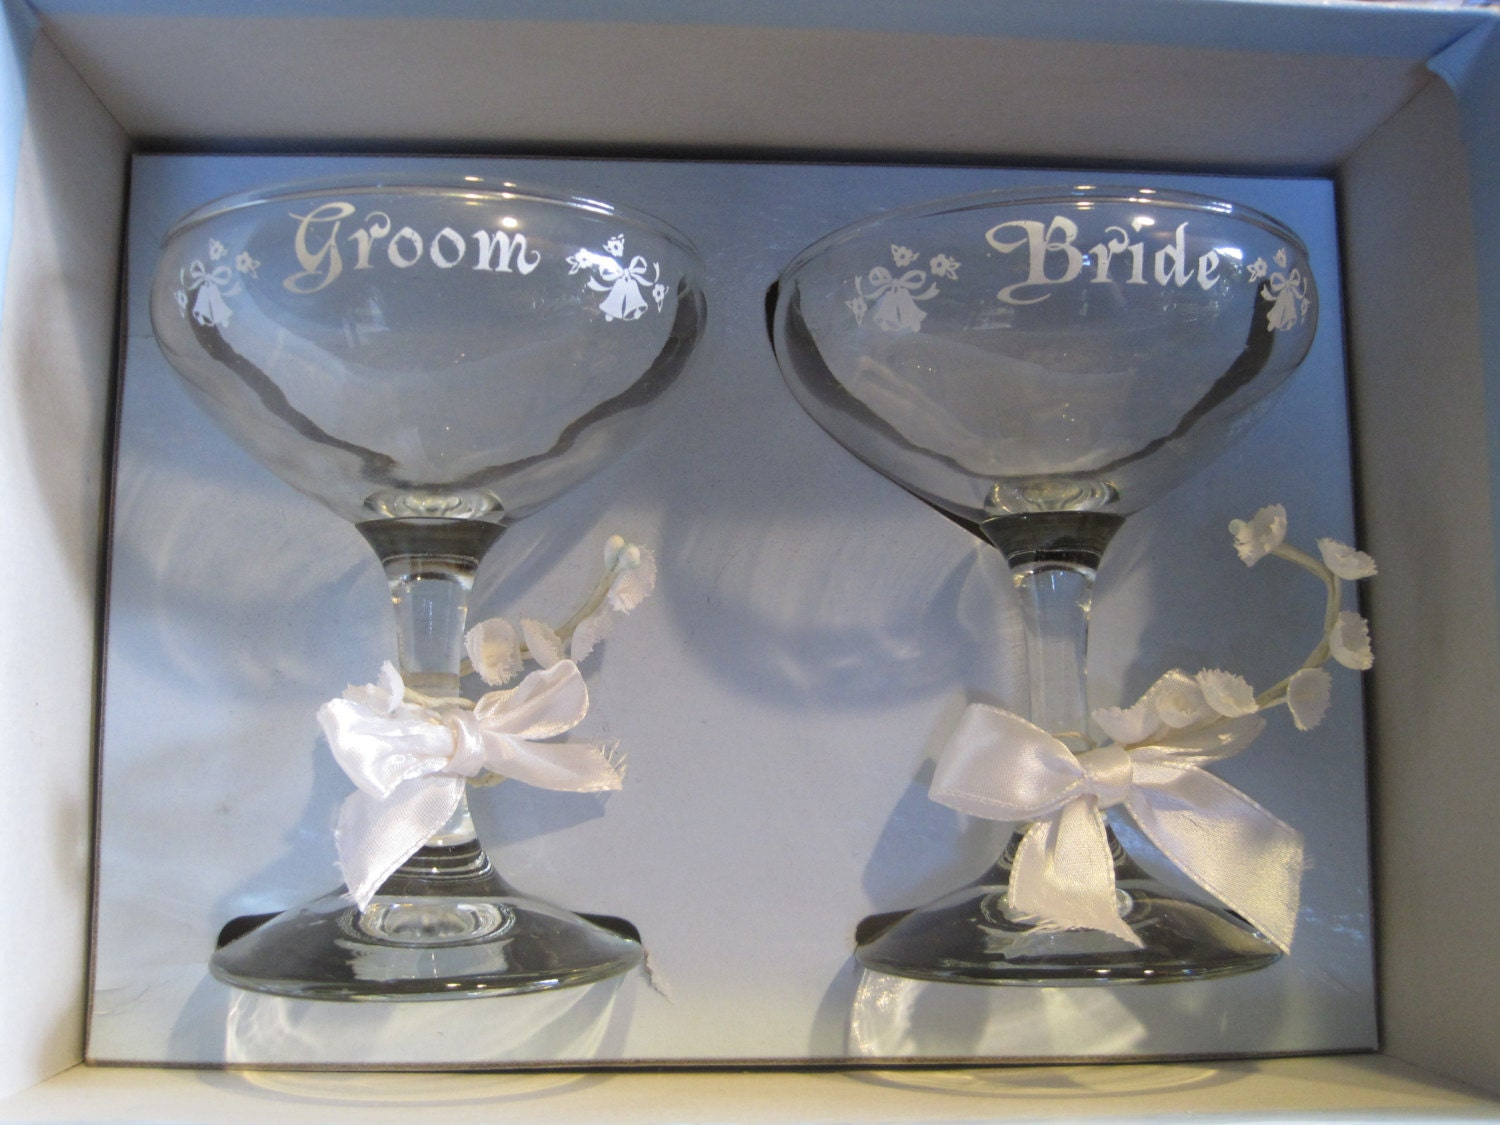 Expensive Wedding Gifts For Bride And Groom : Toast the Bride and Groom Vintage Embossed Goblets